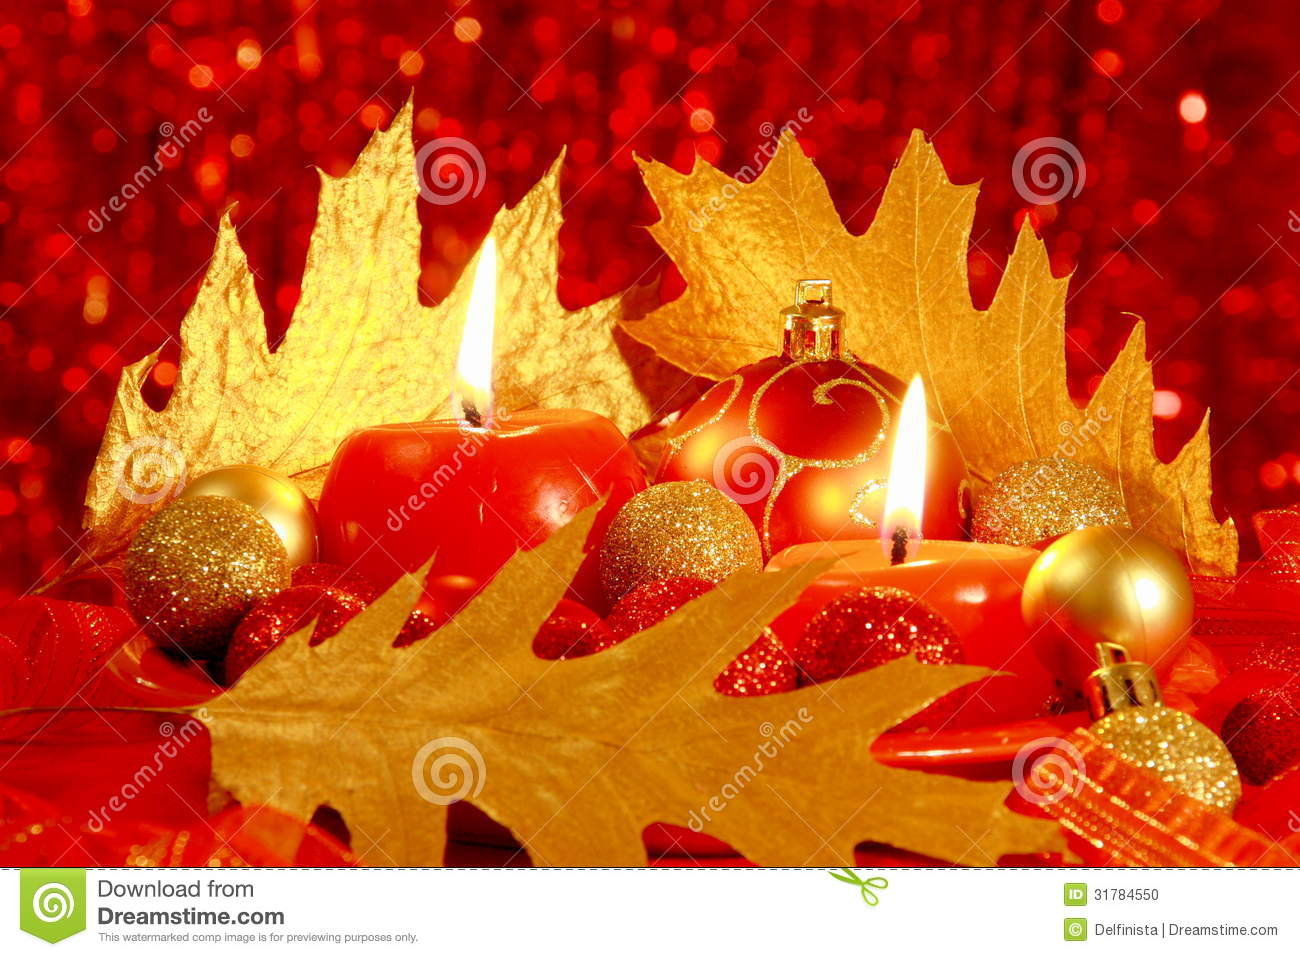 Fall And Thanksgiving Wallpaper Red Christmas Card Balls Amp Candles Stock Photos Stock